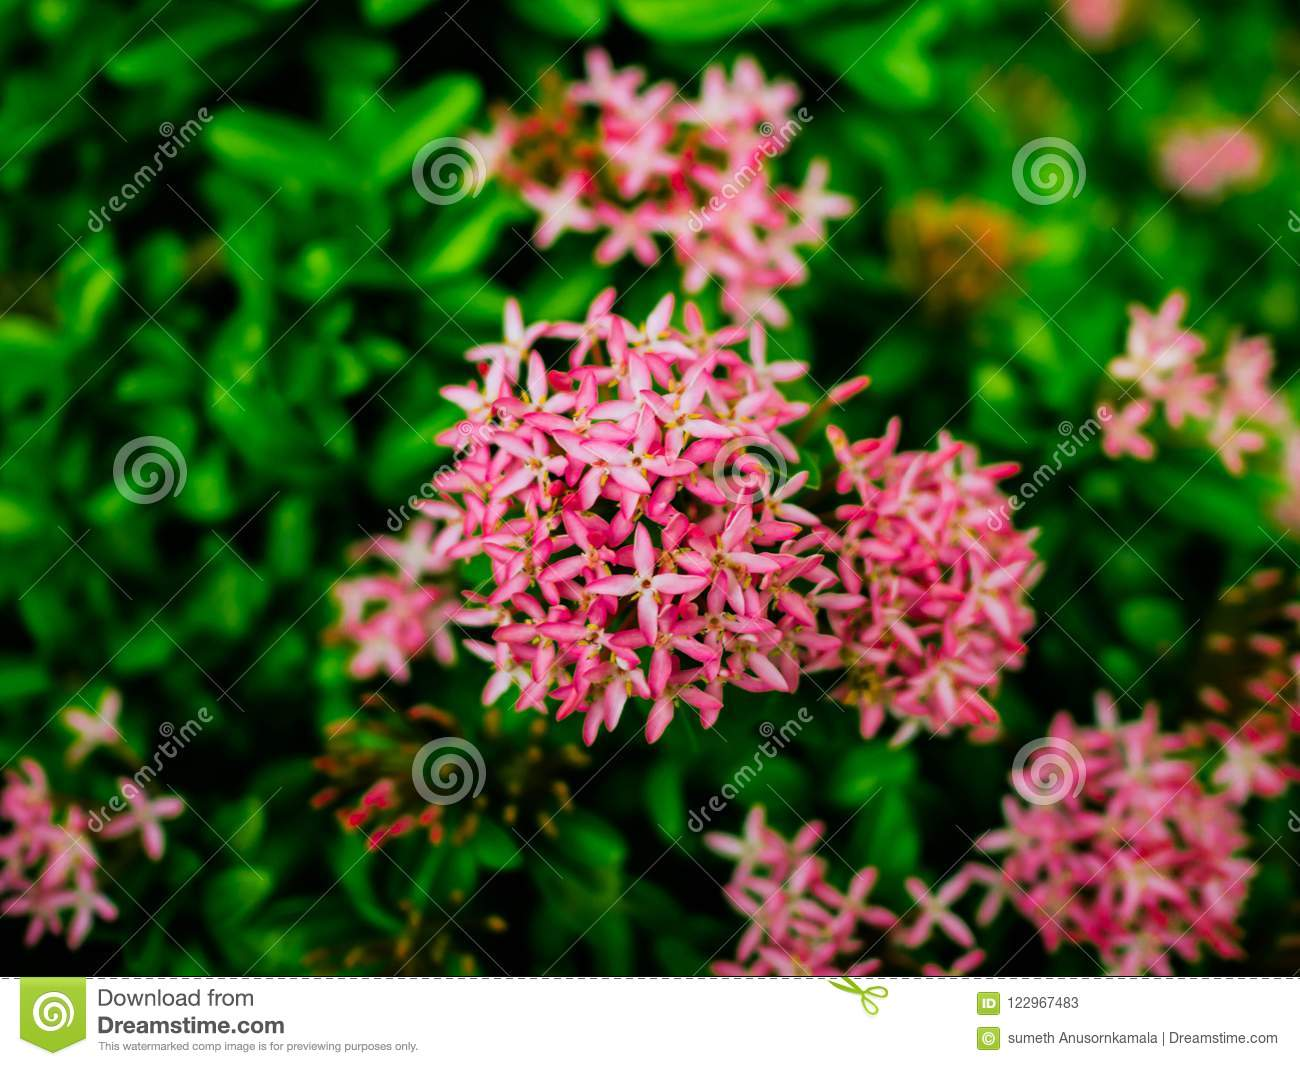 Close up pink west indian jasmine flowers stock image image of download close up pink west indian jasmine flowers stock image image of decoration leaf izmirmasajfo